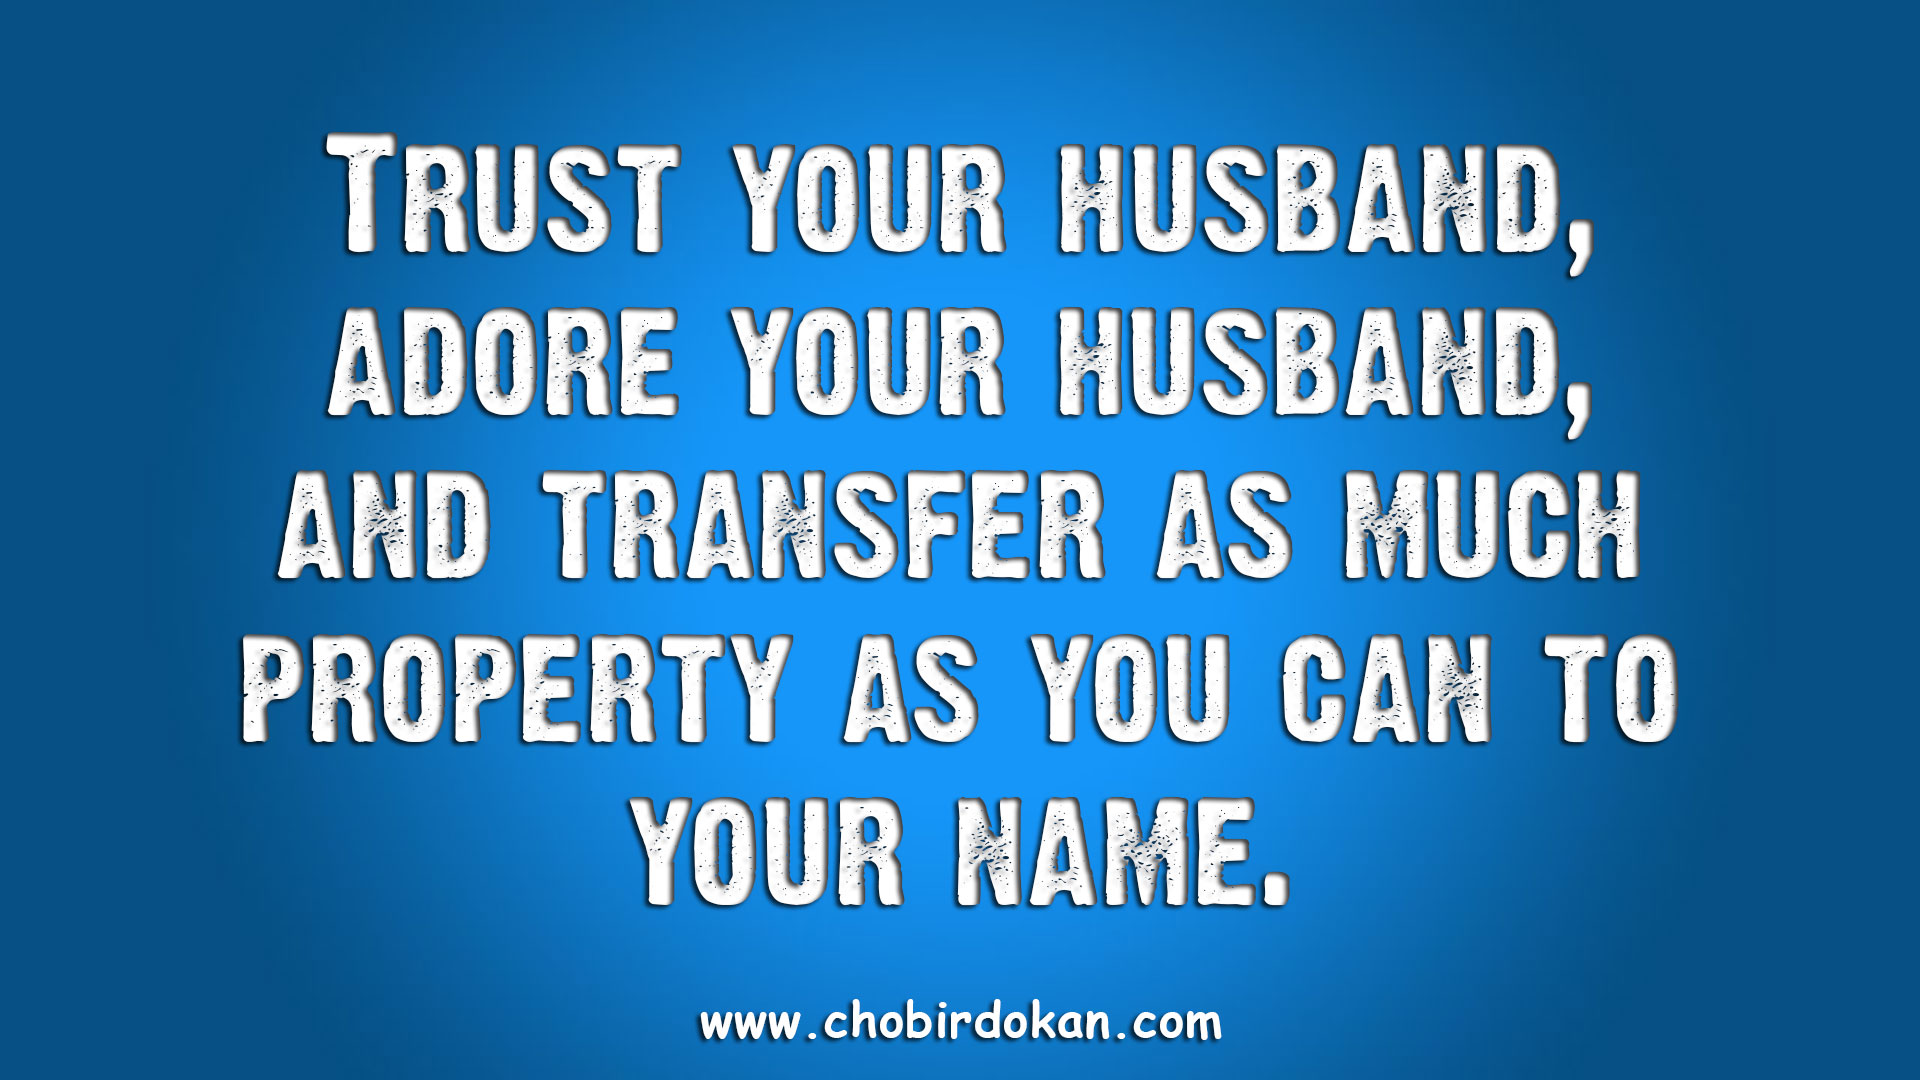 Quotes About Love Your Husband : Funny Picture Quotes about Husband and Wife love quotes Chobirdokan